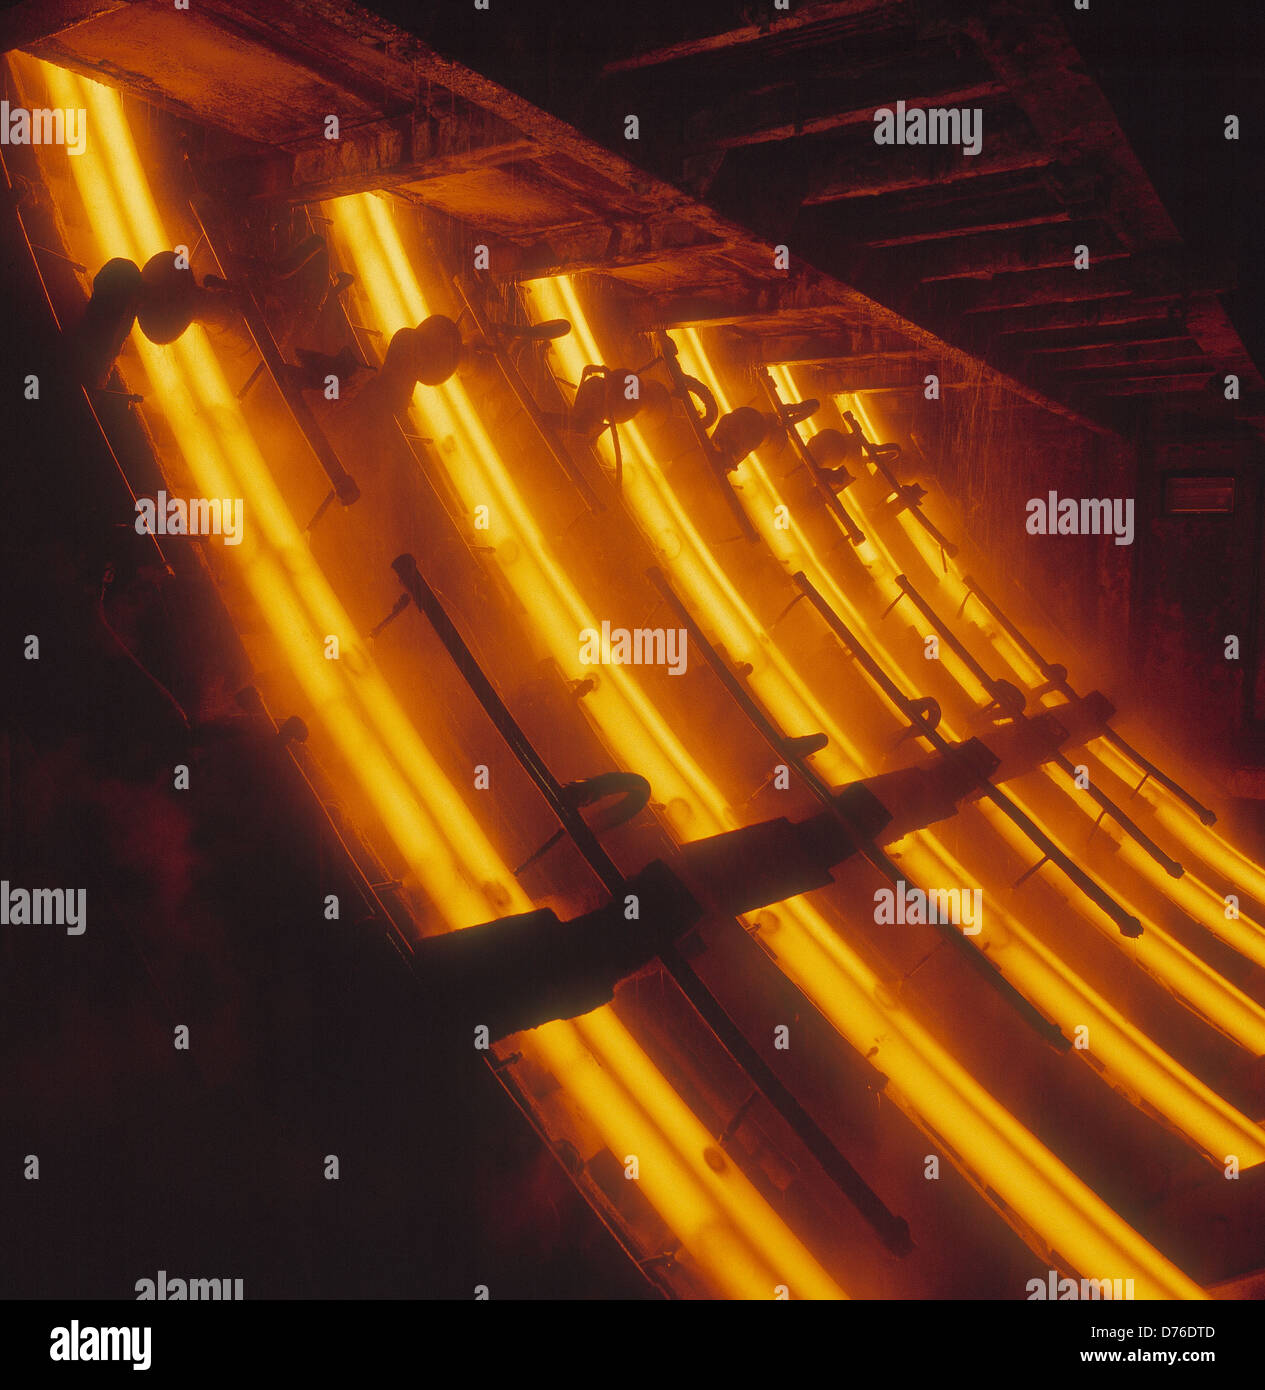 Continuous Casting Plant at Rotherham Engineering Steels U.K. Inside chamber at cooling stage. A ladle of steel Stock Photo